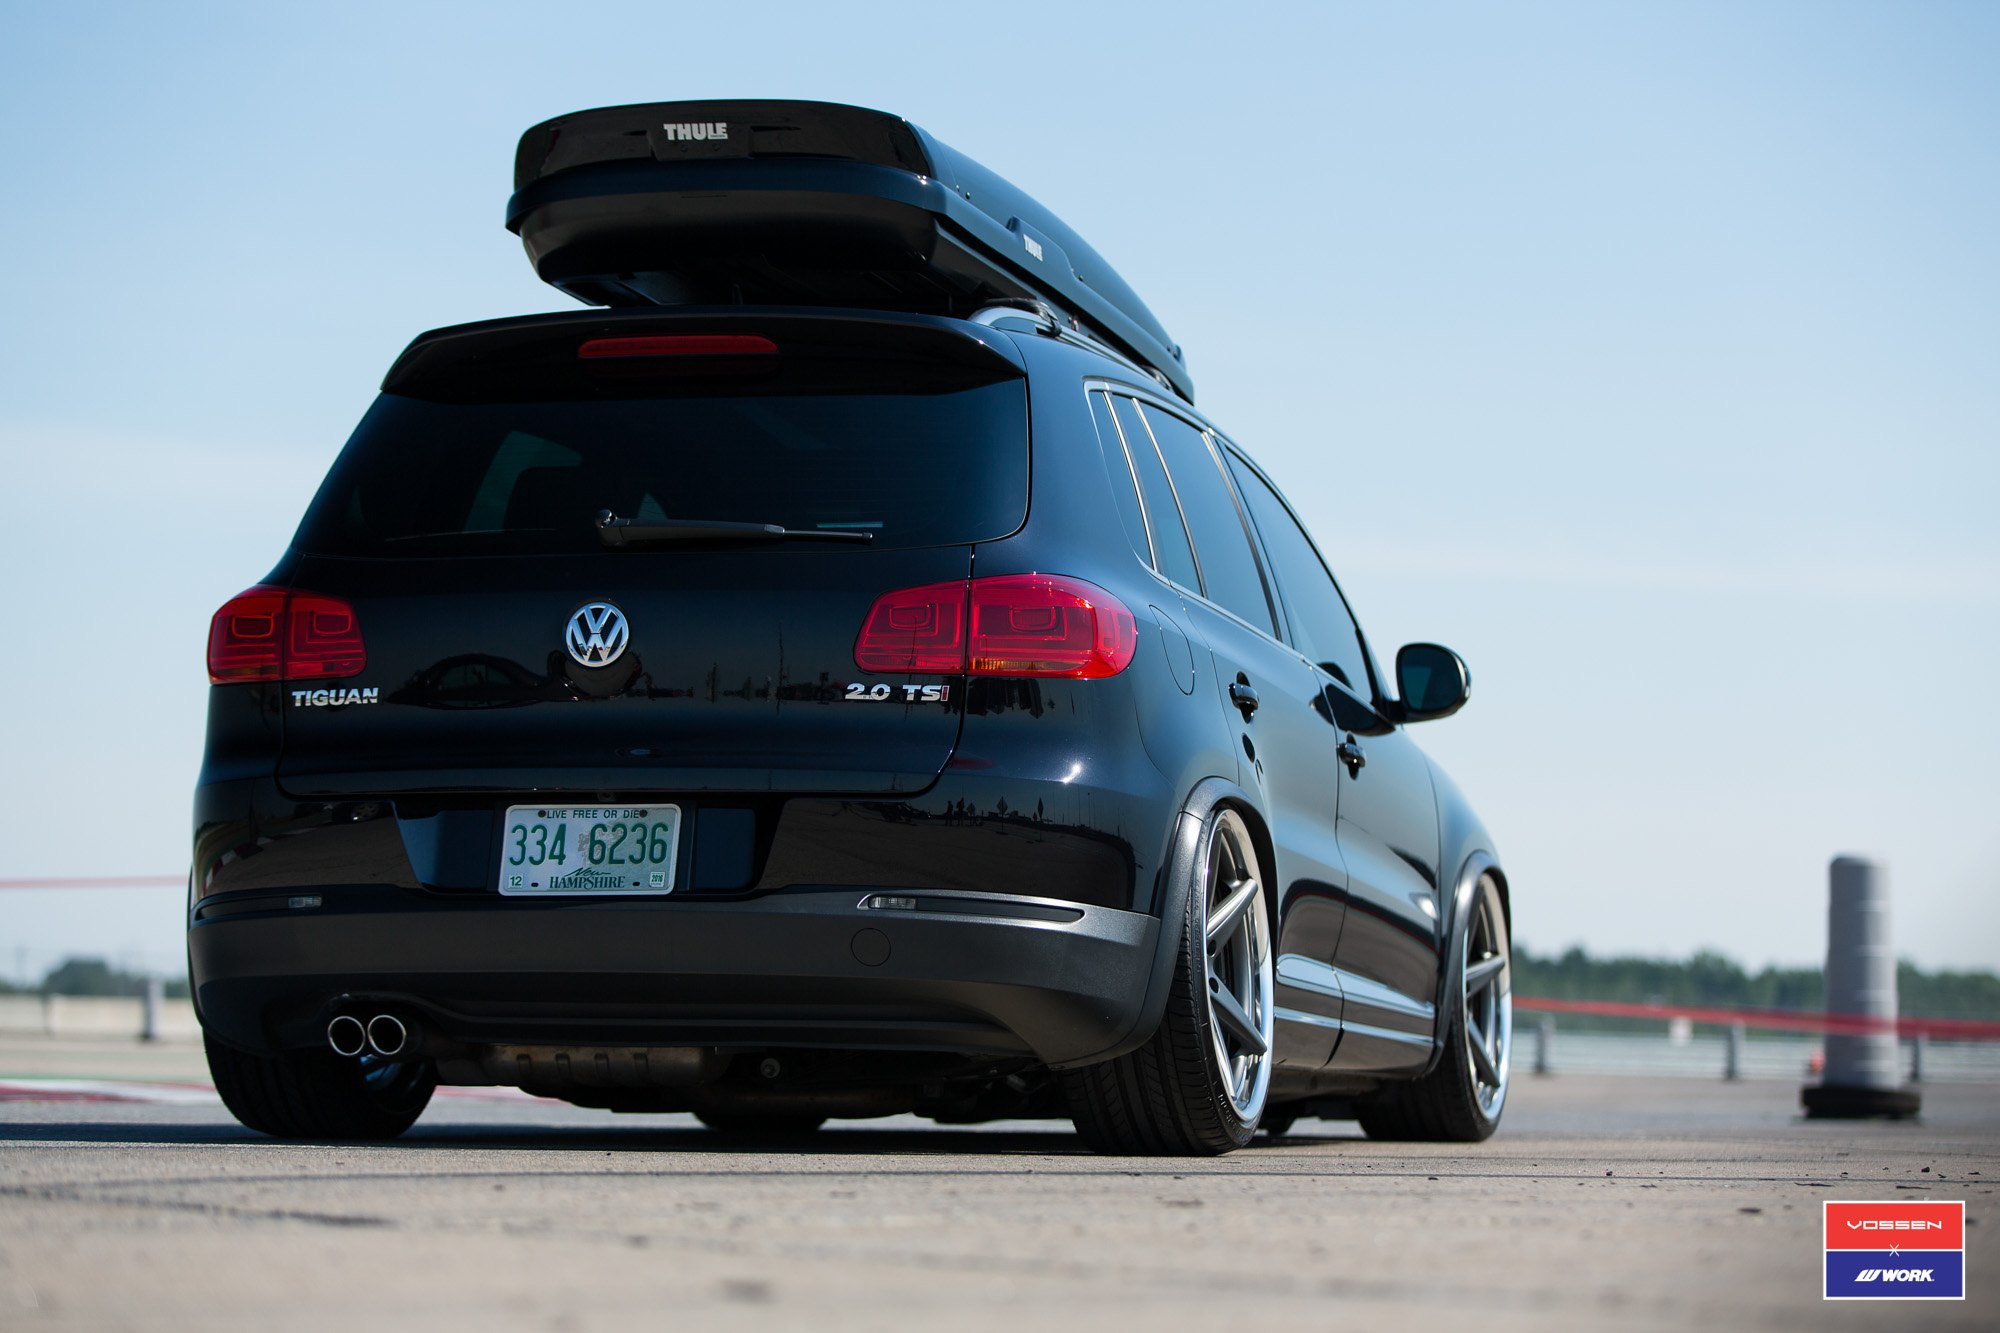 Thule Roof Rack On Black Volkswagen Tiguan 2.0   Photo By Vossen